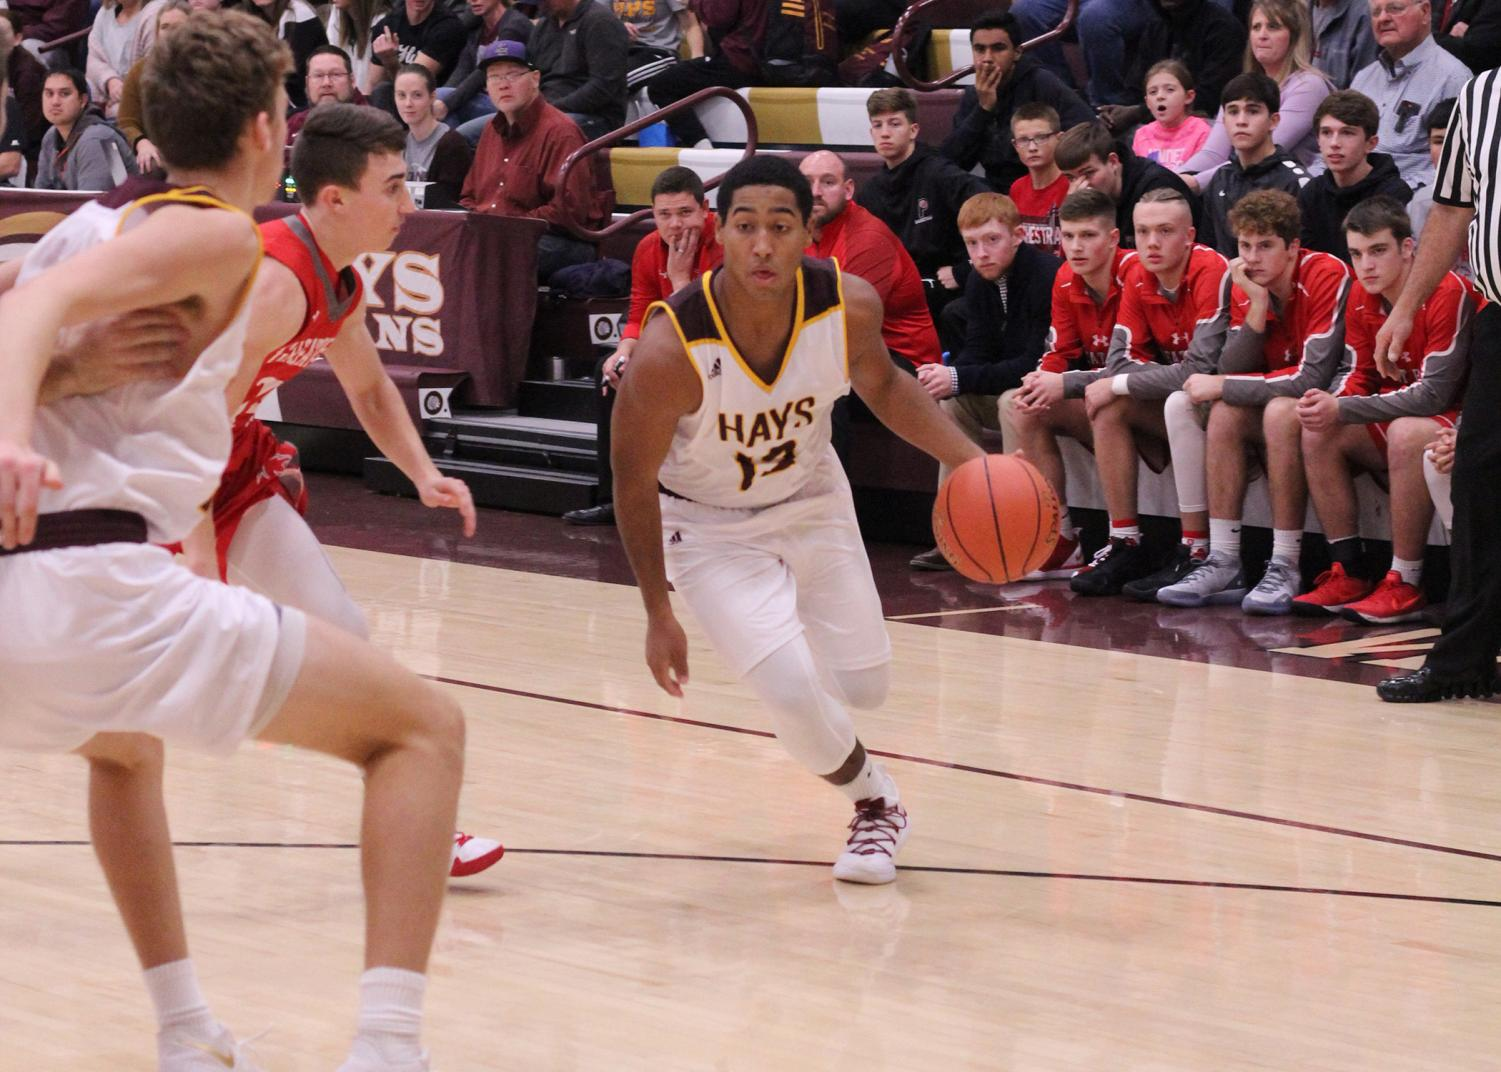 Tradgon McCrae a 2019 graduate dribbles the ball down the court during a basketball game at home last year.